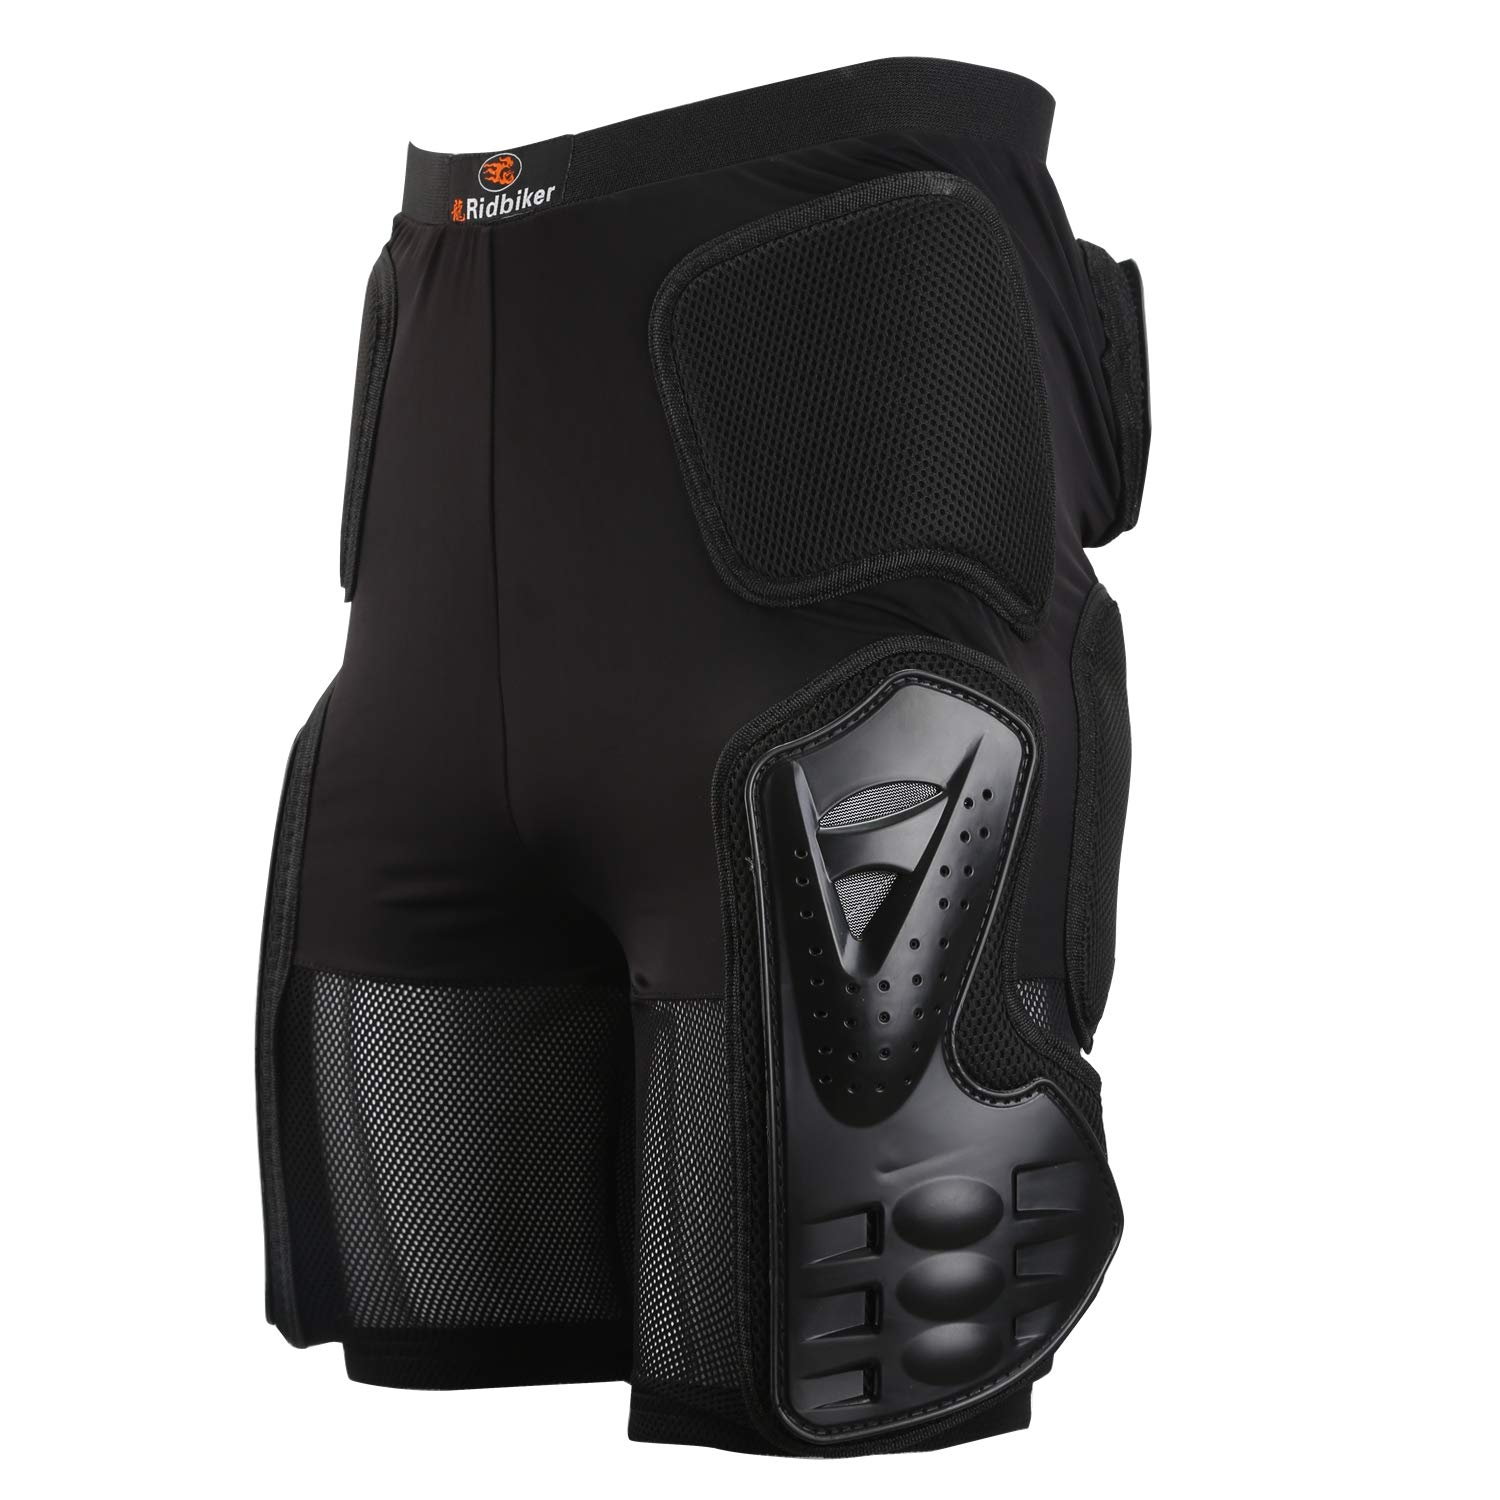 Riding Armor Pants Skating Protective Armour Skiing Snowboards Mountain Bike Cycling Cycle Shorts (M (32'' to 35'' Waist)) Black by RIDBIKER